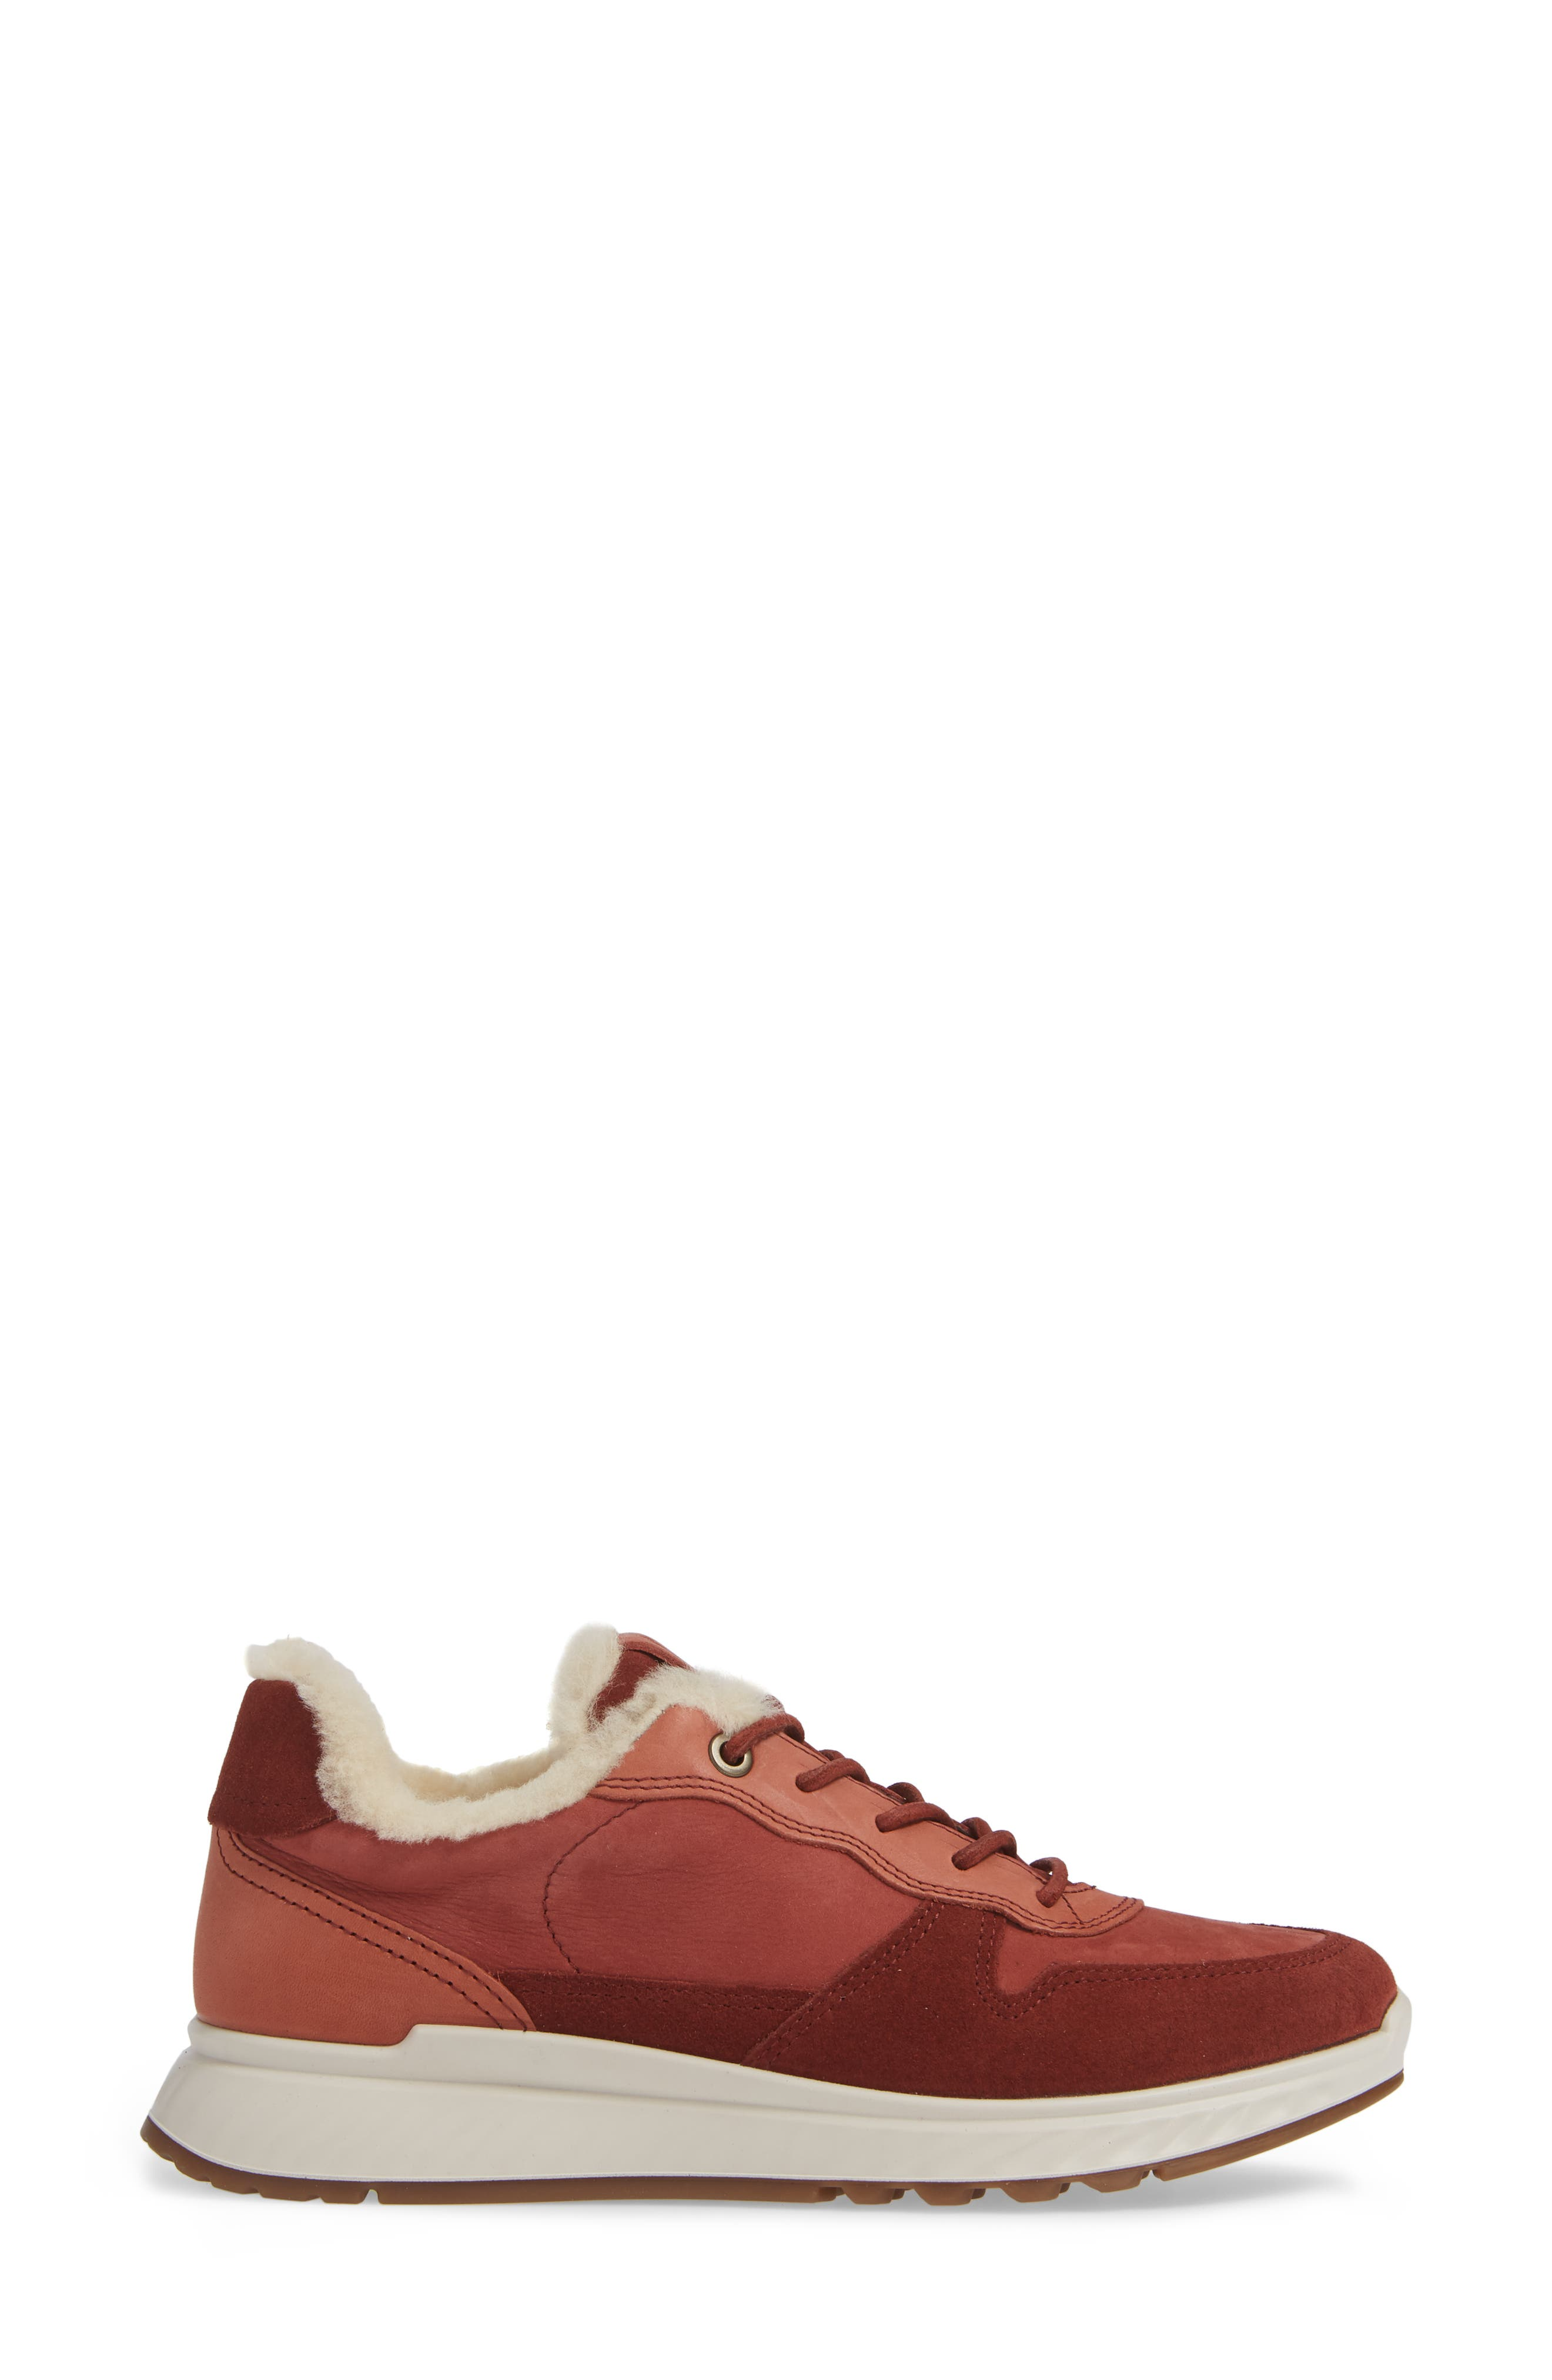 ST1 Genuine Shearling Sneaker,                             Alternate thumbnail 3, color,                             FIRED BRICK NUBUCK LEATHER